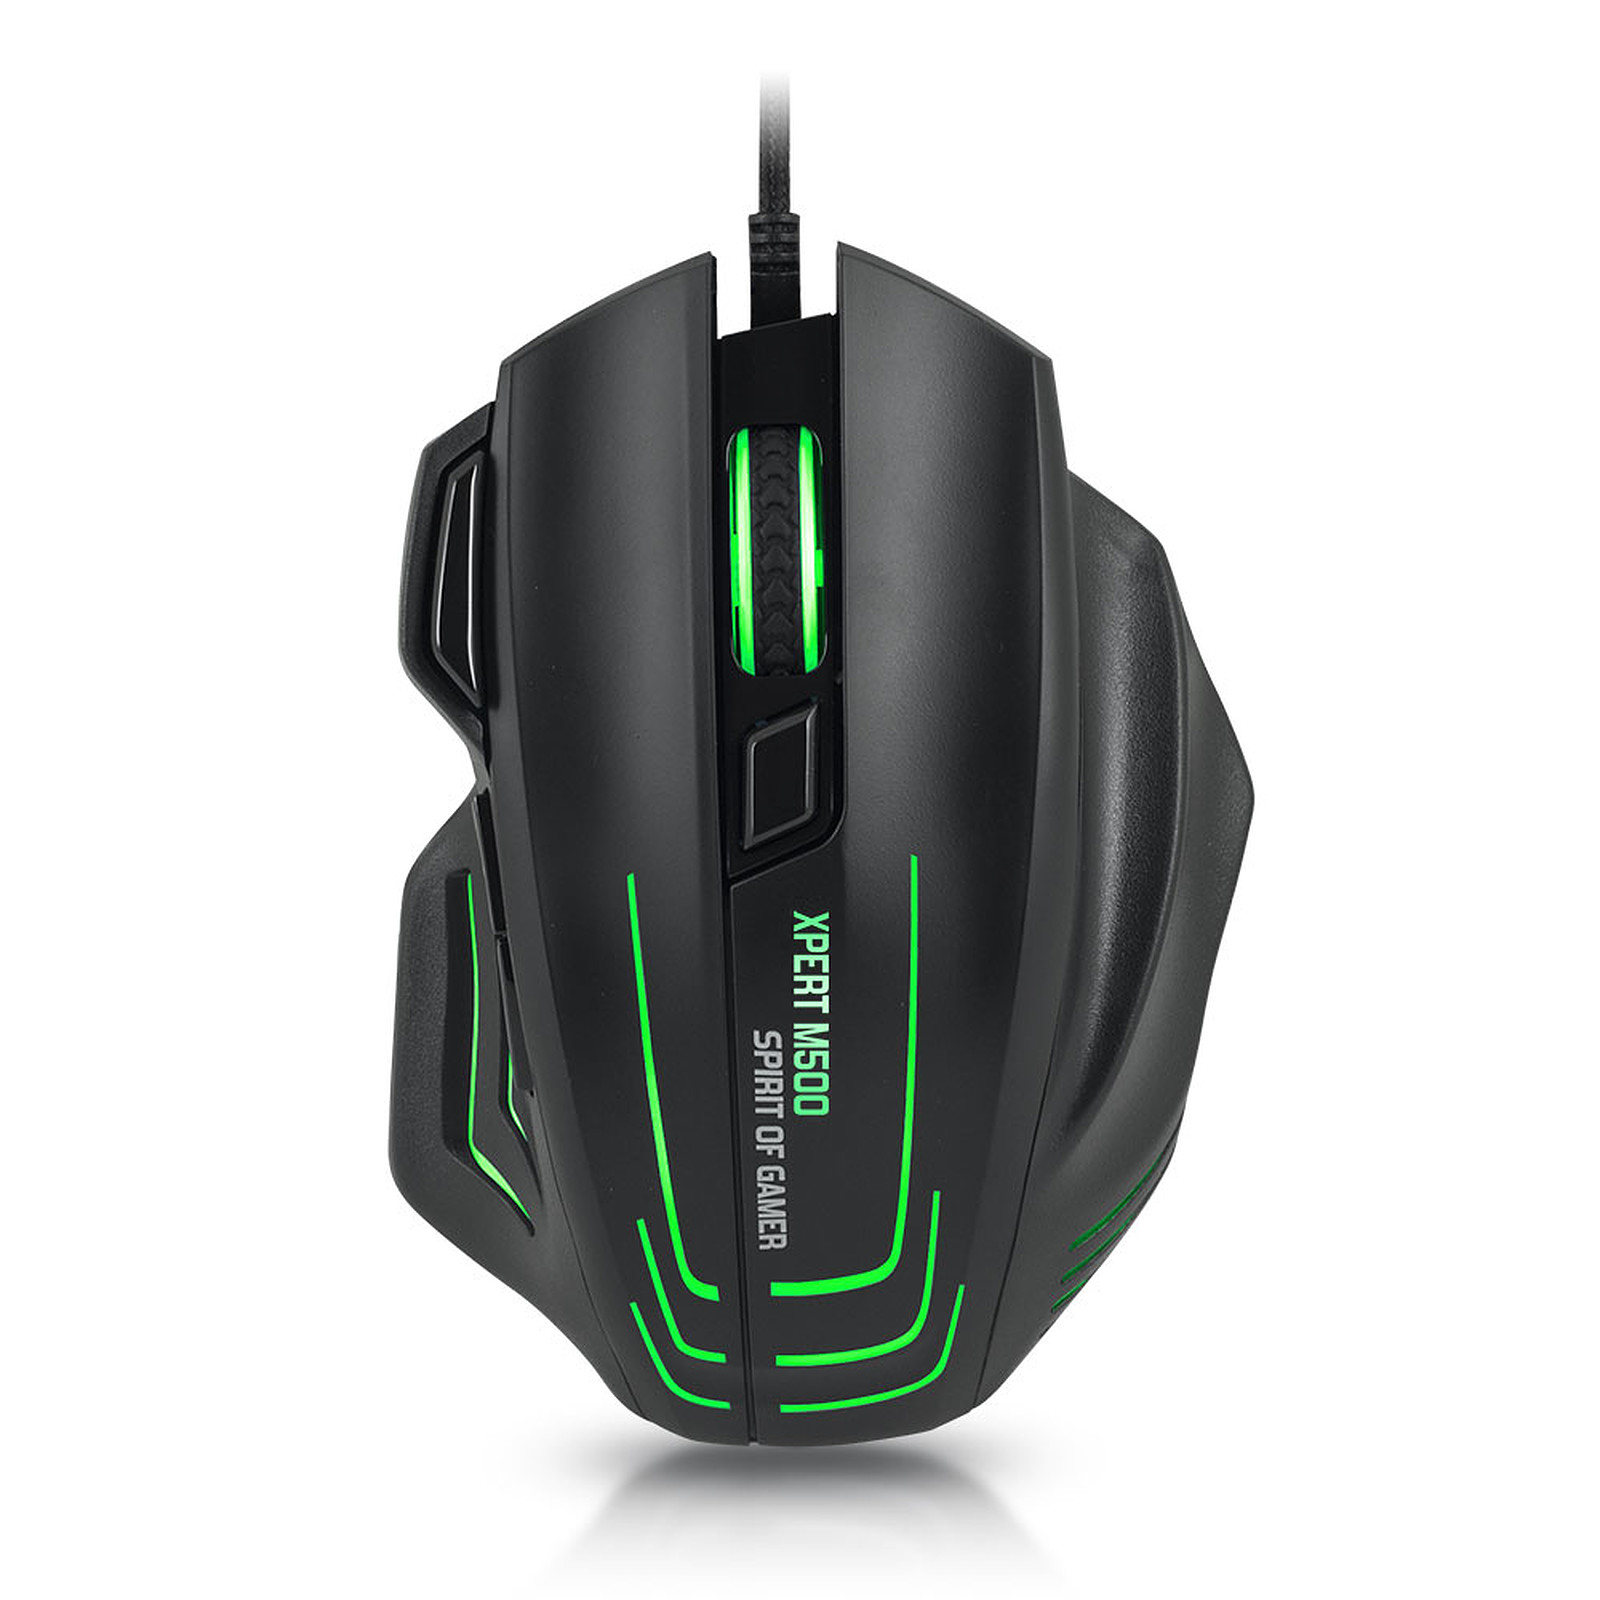 Souris filaire Advance Spirit of Gamer XPERT M500 (S-XM500), informatique Reunion, 974, Futur Réunion